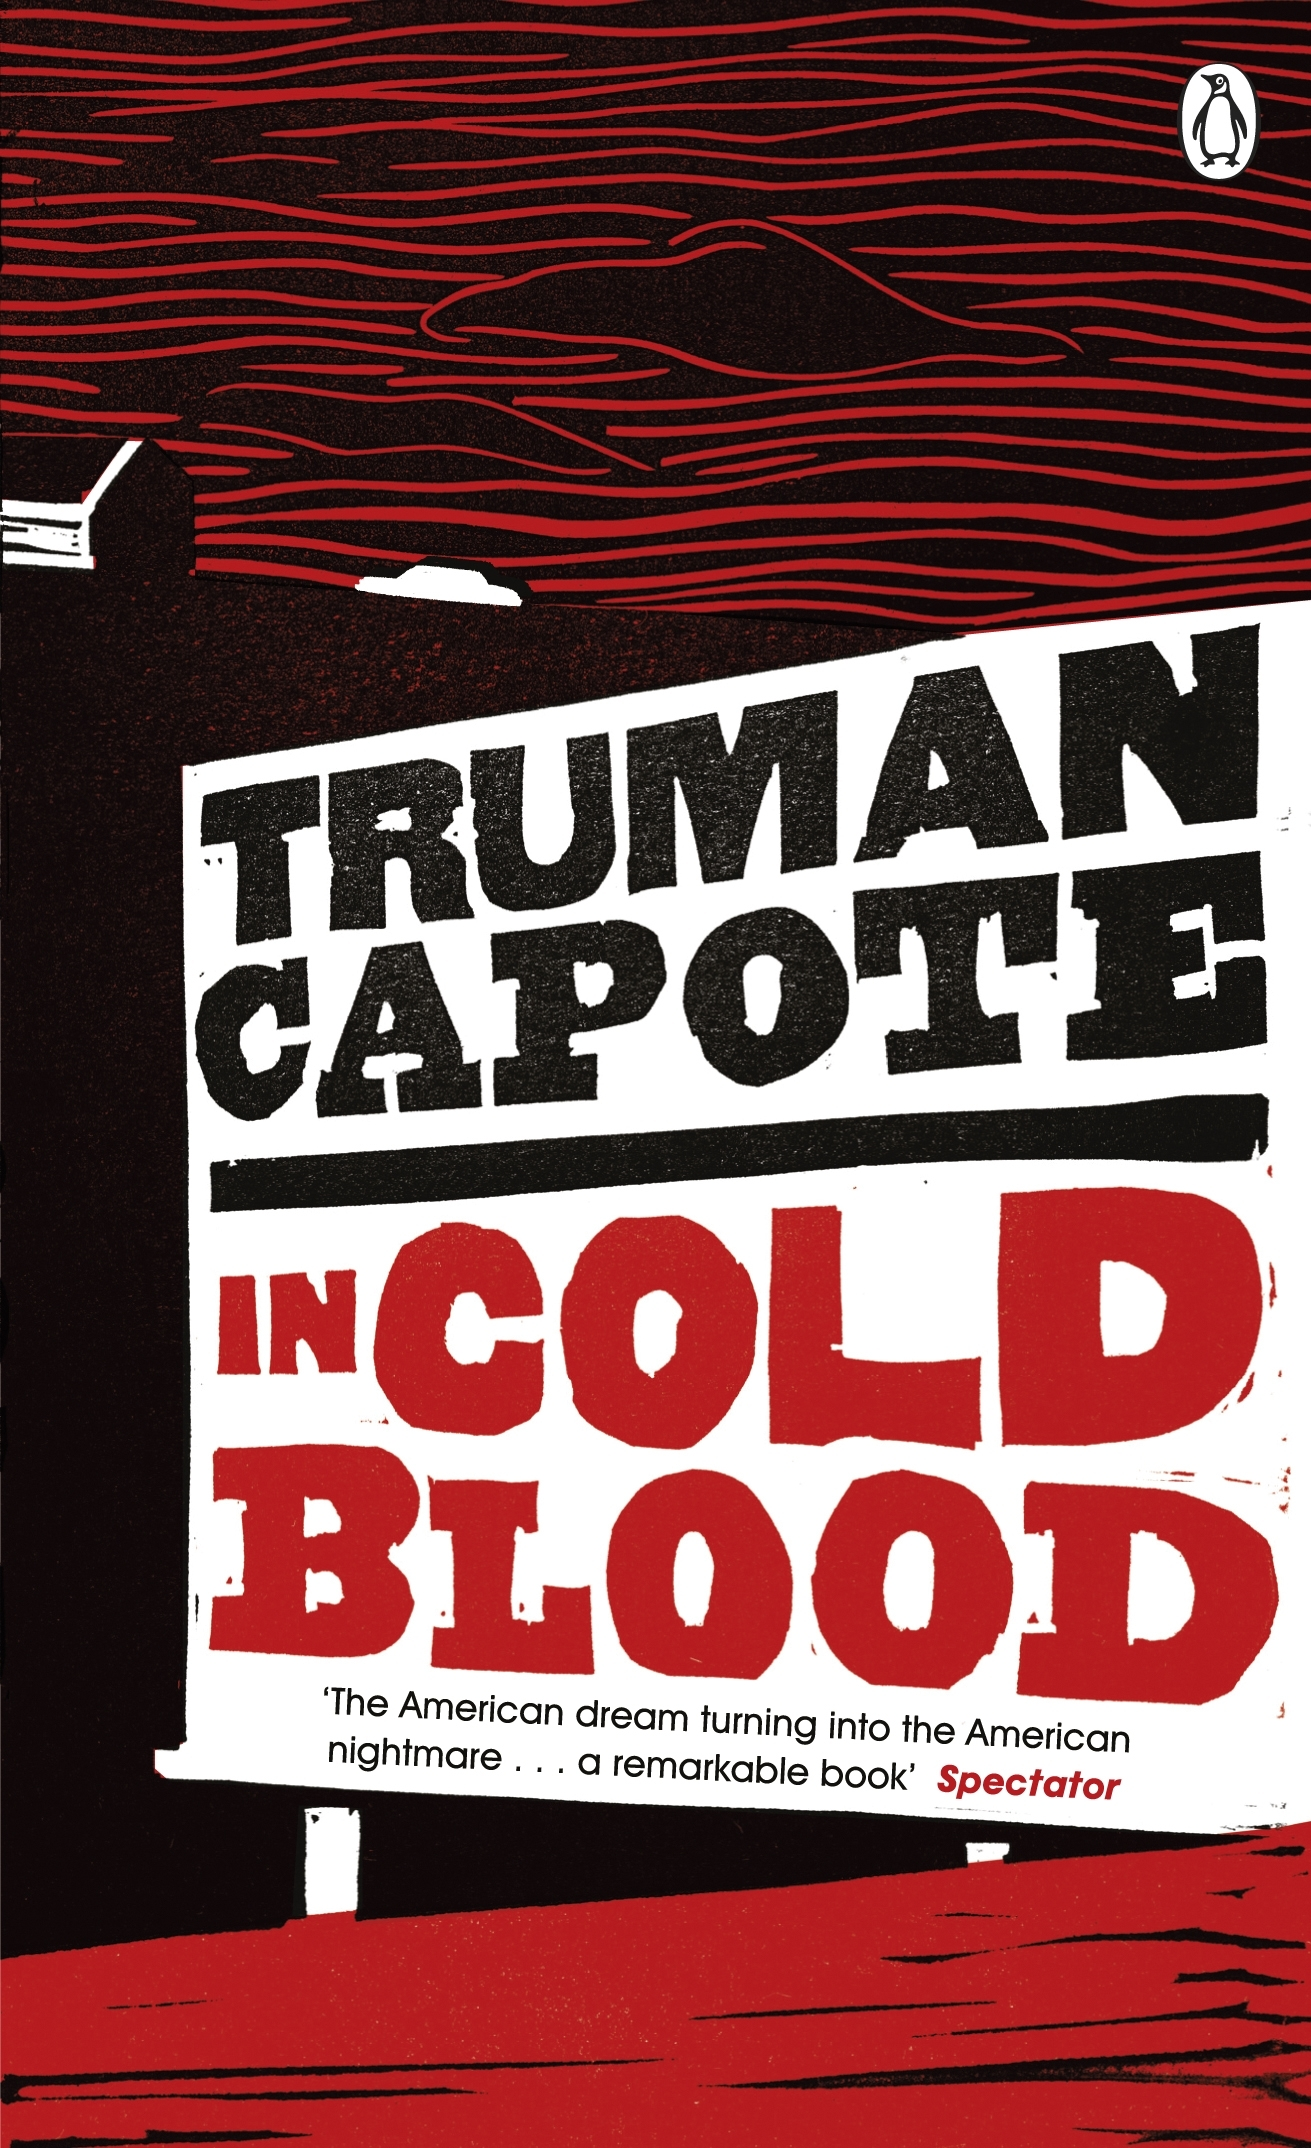 "truman capote in cold blood essays This work is dedicated to one of the most important novels of the outstanding american writer truman capote ""in cold blood (1966) this novel is based on the."